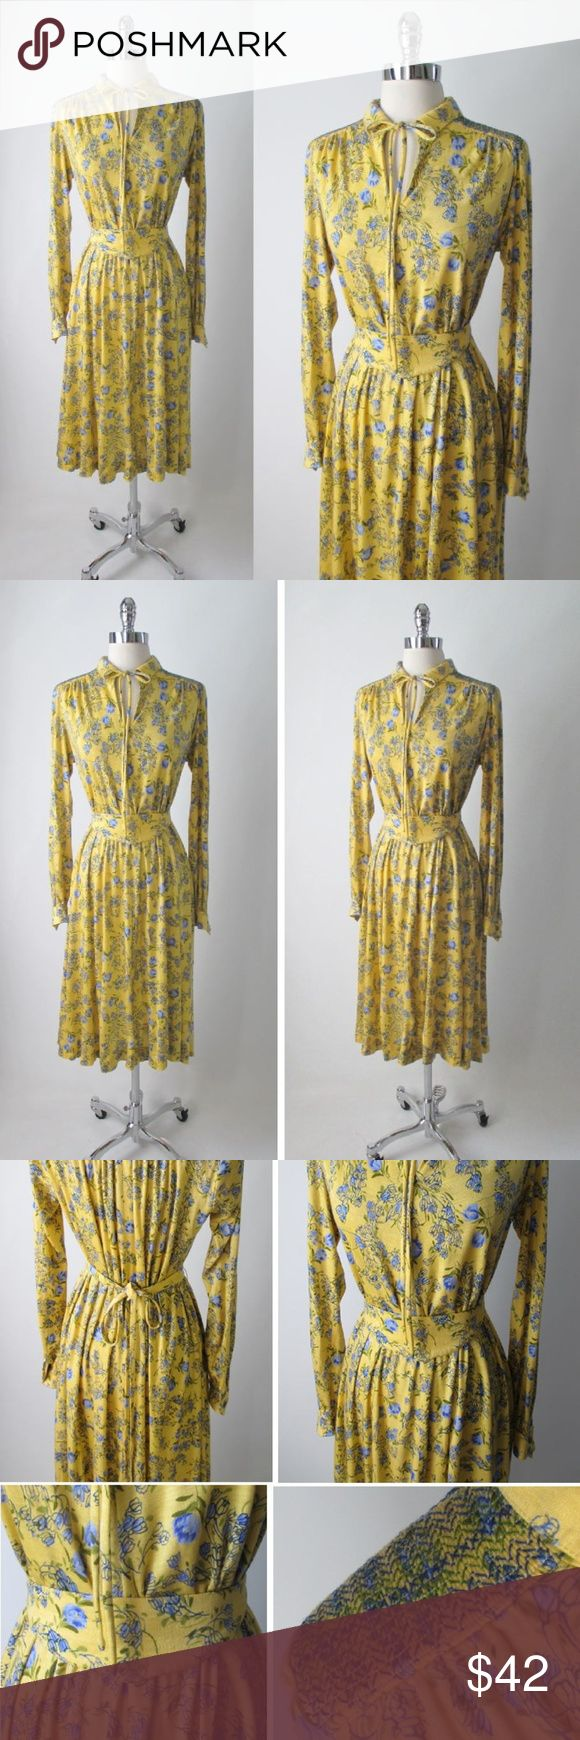 Vintage 70's Yellow Flower Keyhole Day Tent Dress 1970's Yellow with pretty blue and green floral. A line style cut that wears like a tent dress without the belt Keyhole tie at the neck. Smocked shoulders + Button cuffs. Matching belted waist with a soft fullness to the skirt. Soft jersey style cotton + Tricoville • Made in England • Marked USA 10 Underarm: 47 Waist: 50 Hips: 66  Shoulder to waist: 16  inches Waist to hem: 28 inches Sleeve length: 24  I can't find any tears, stains, fade or…